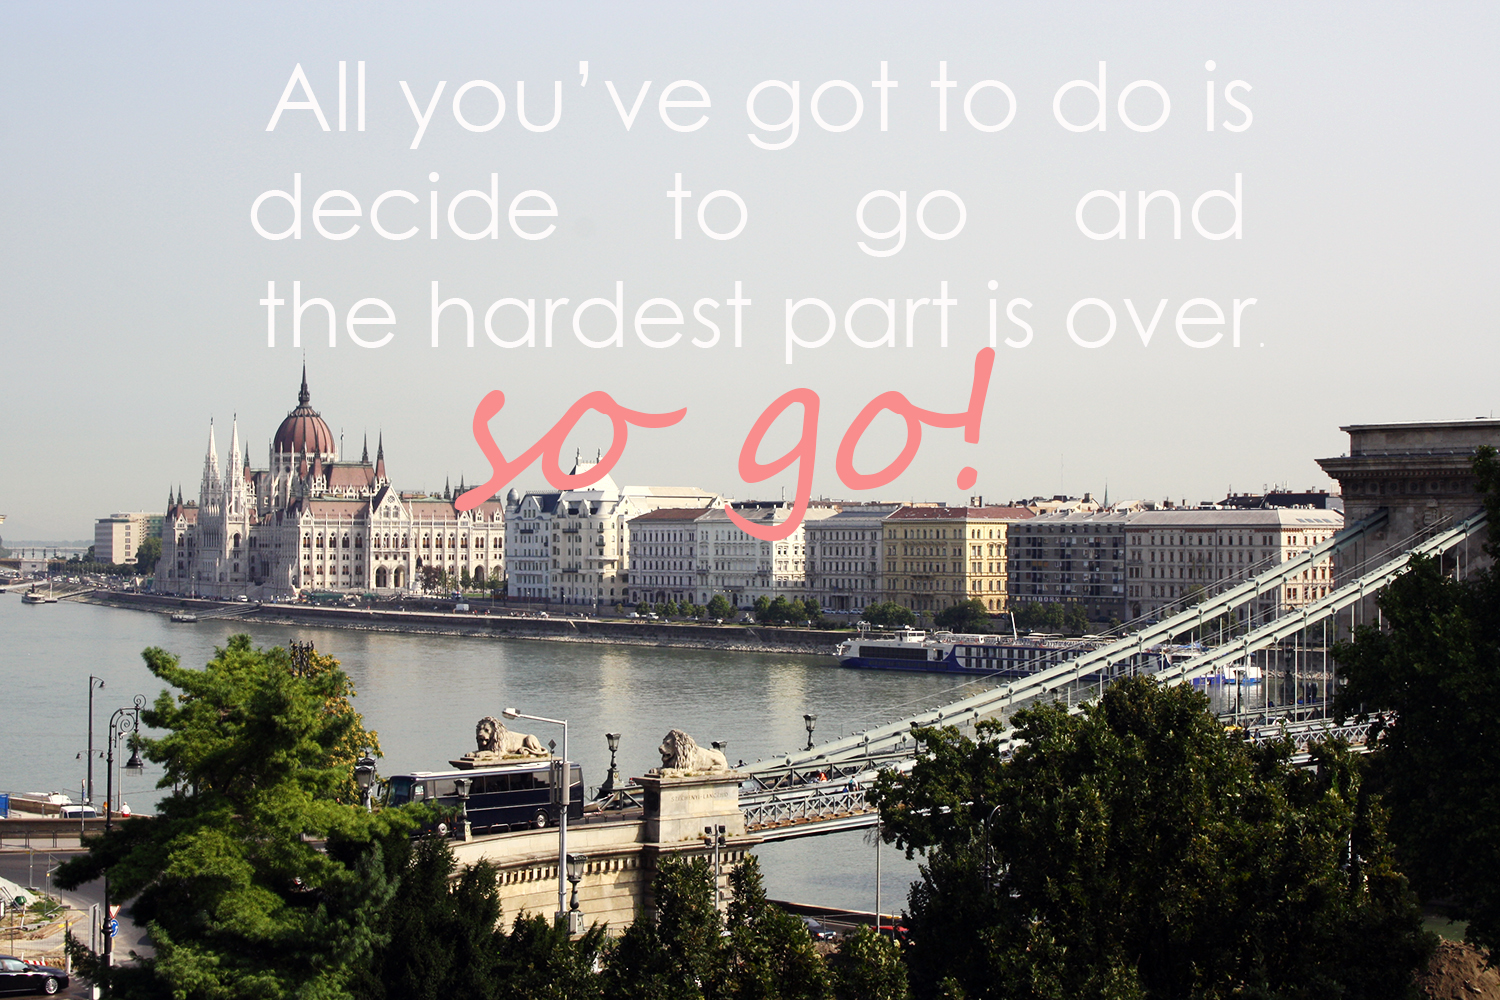 budapest-parlament-view-quote